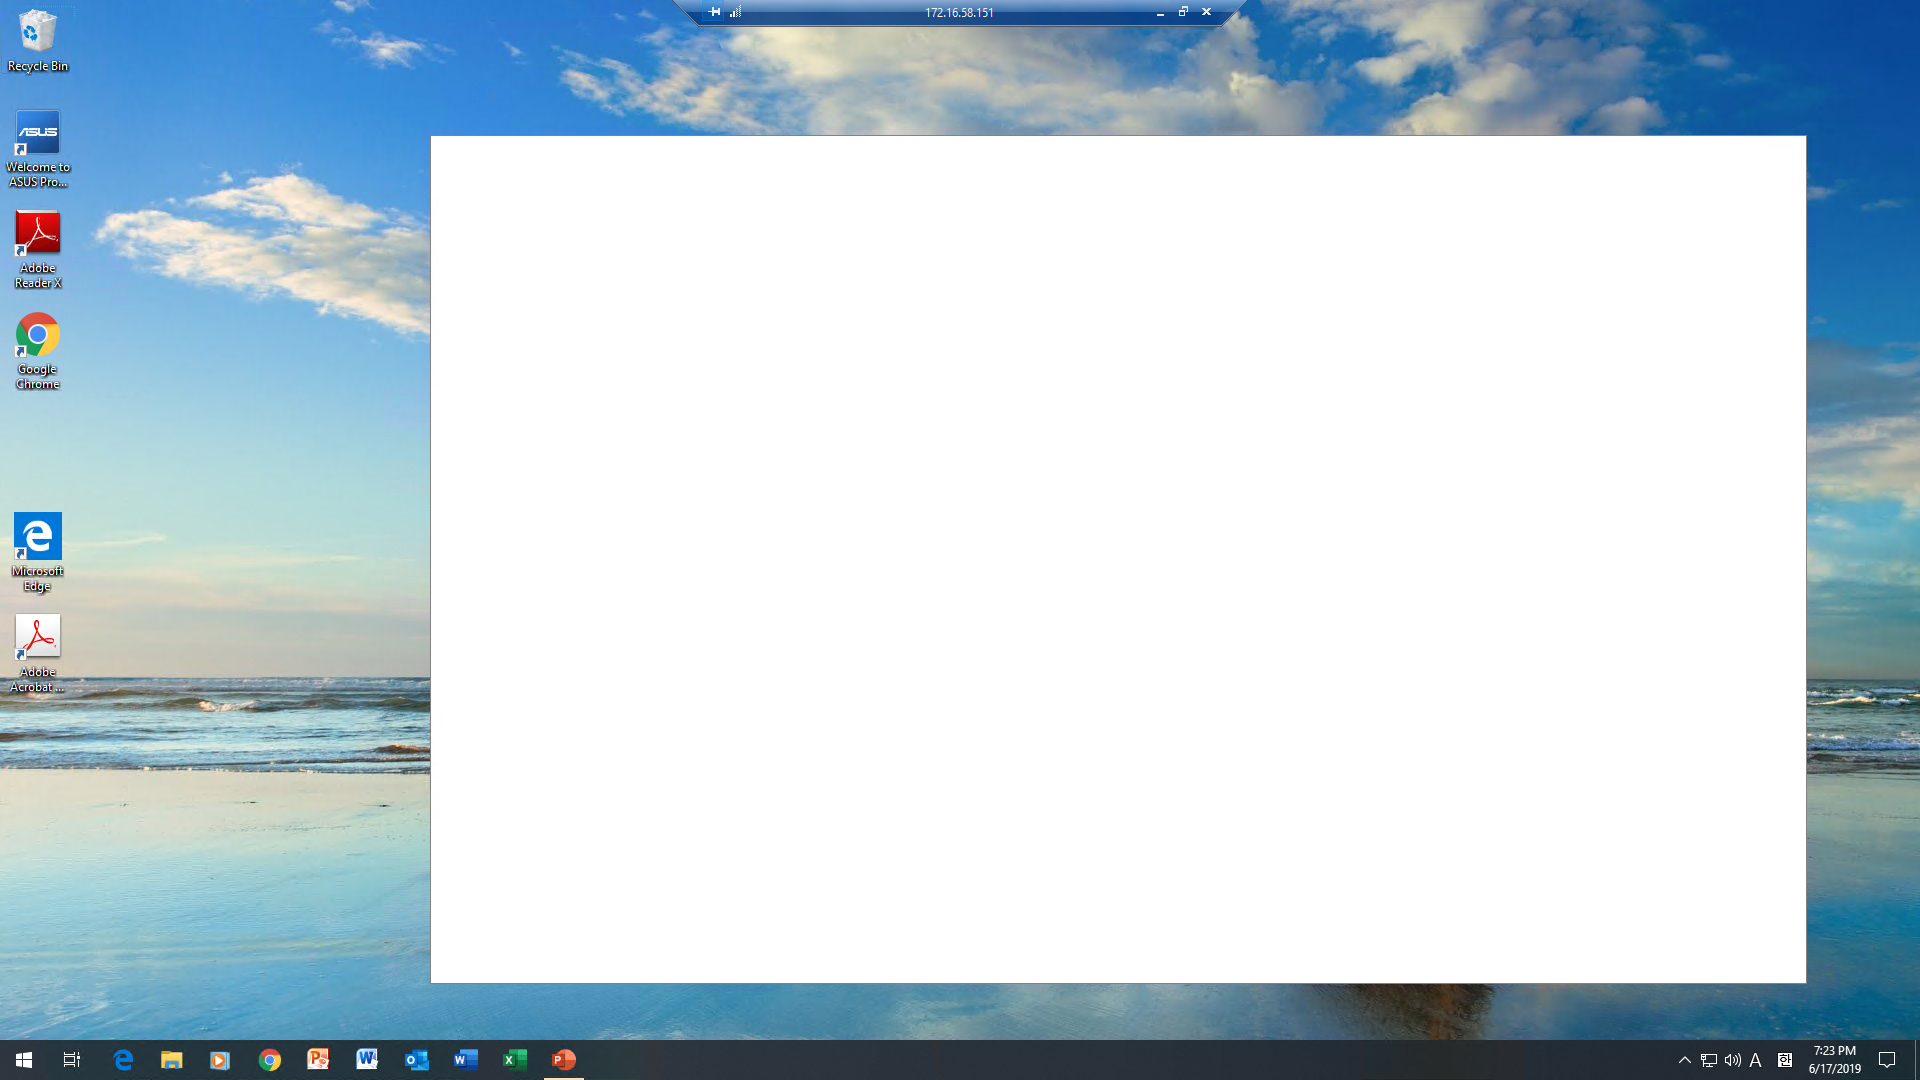 Office Applications Not Displaying Properly After Windows 10